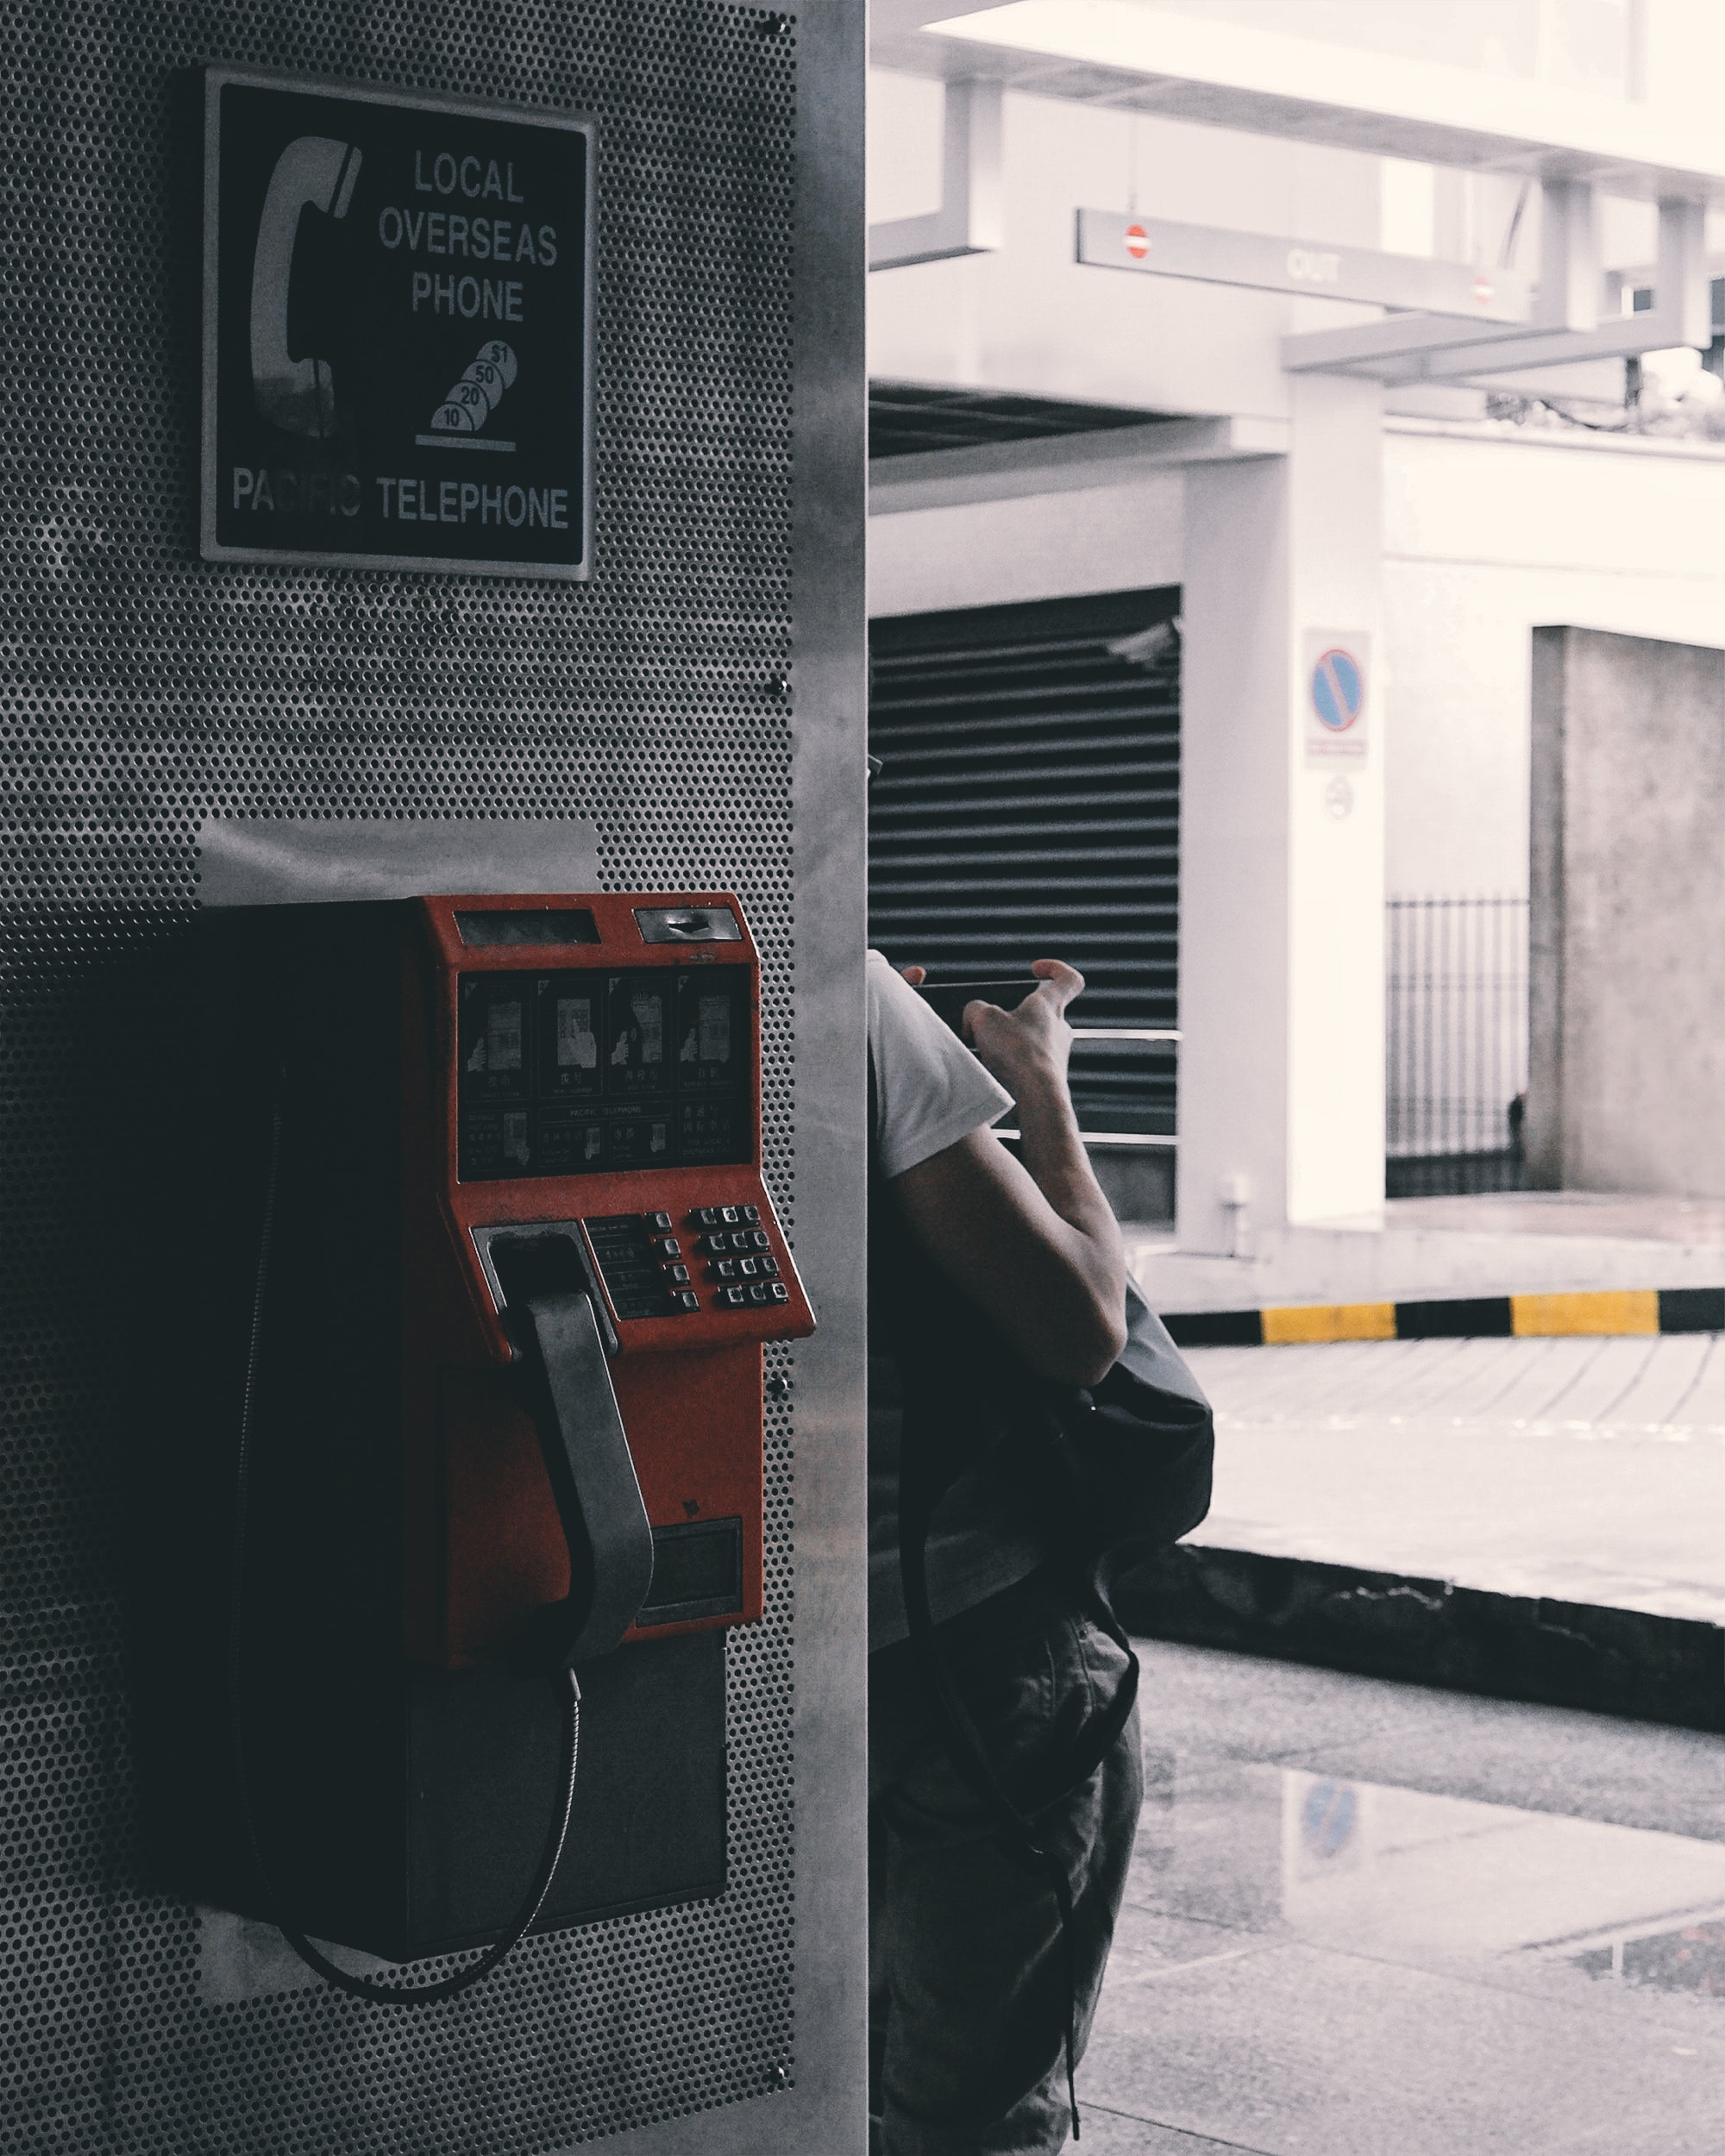 person leaning on wall near brown payphone